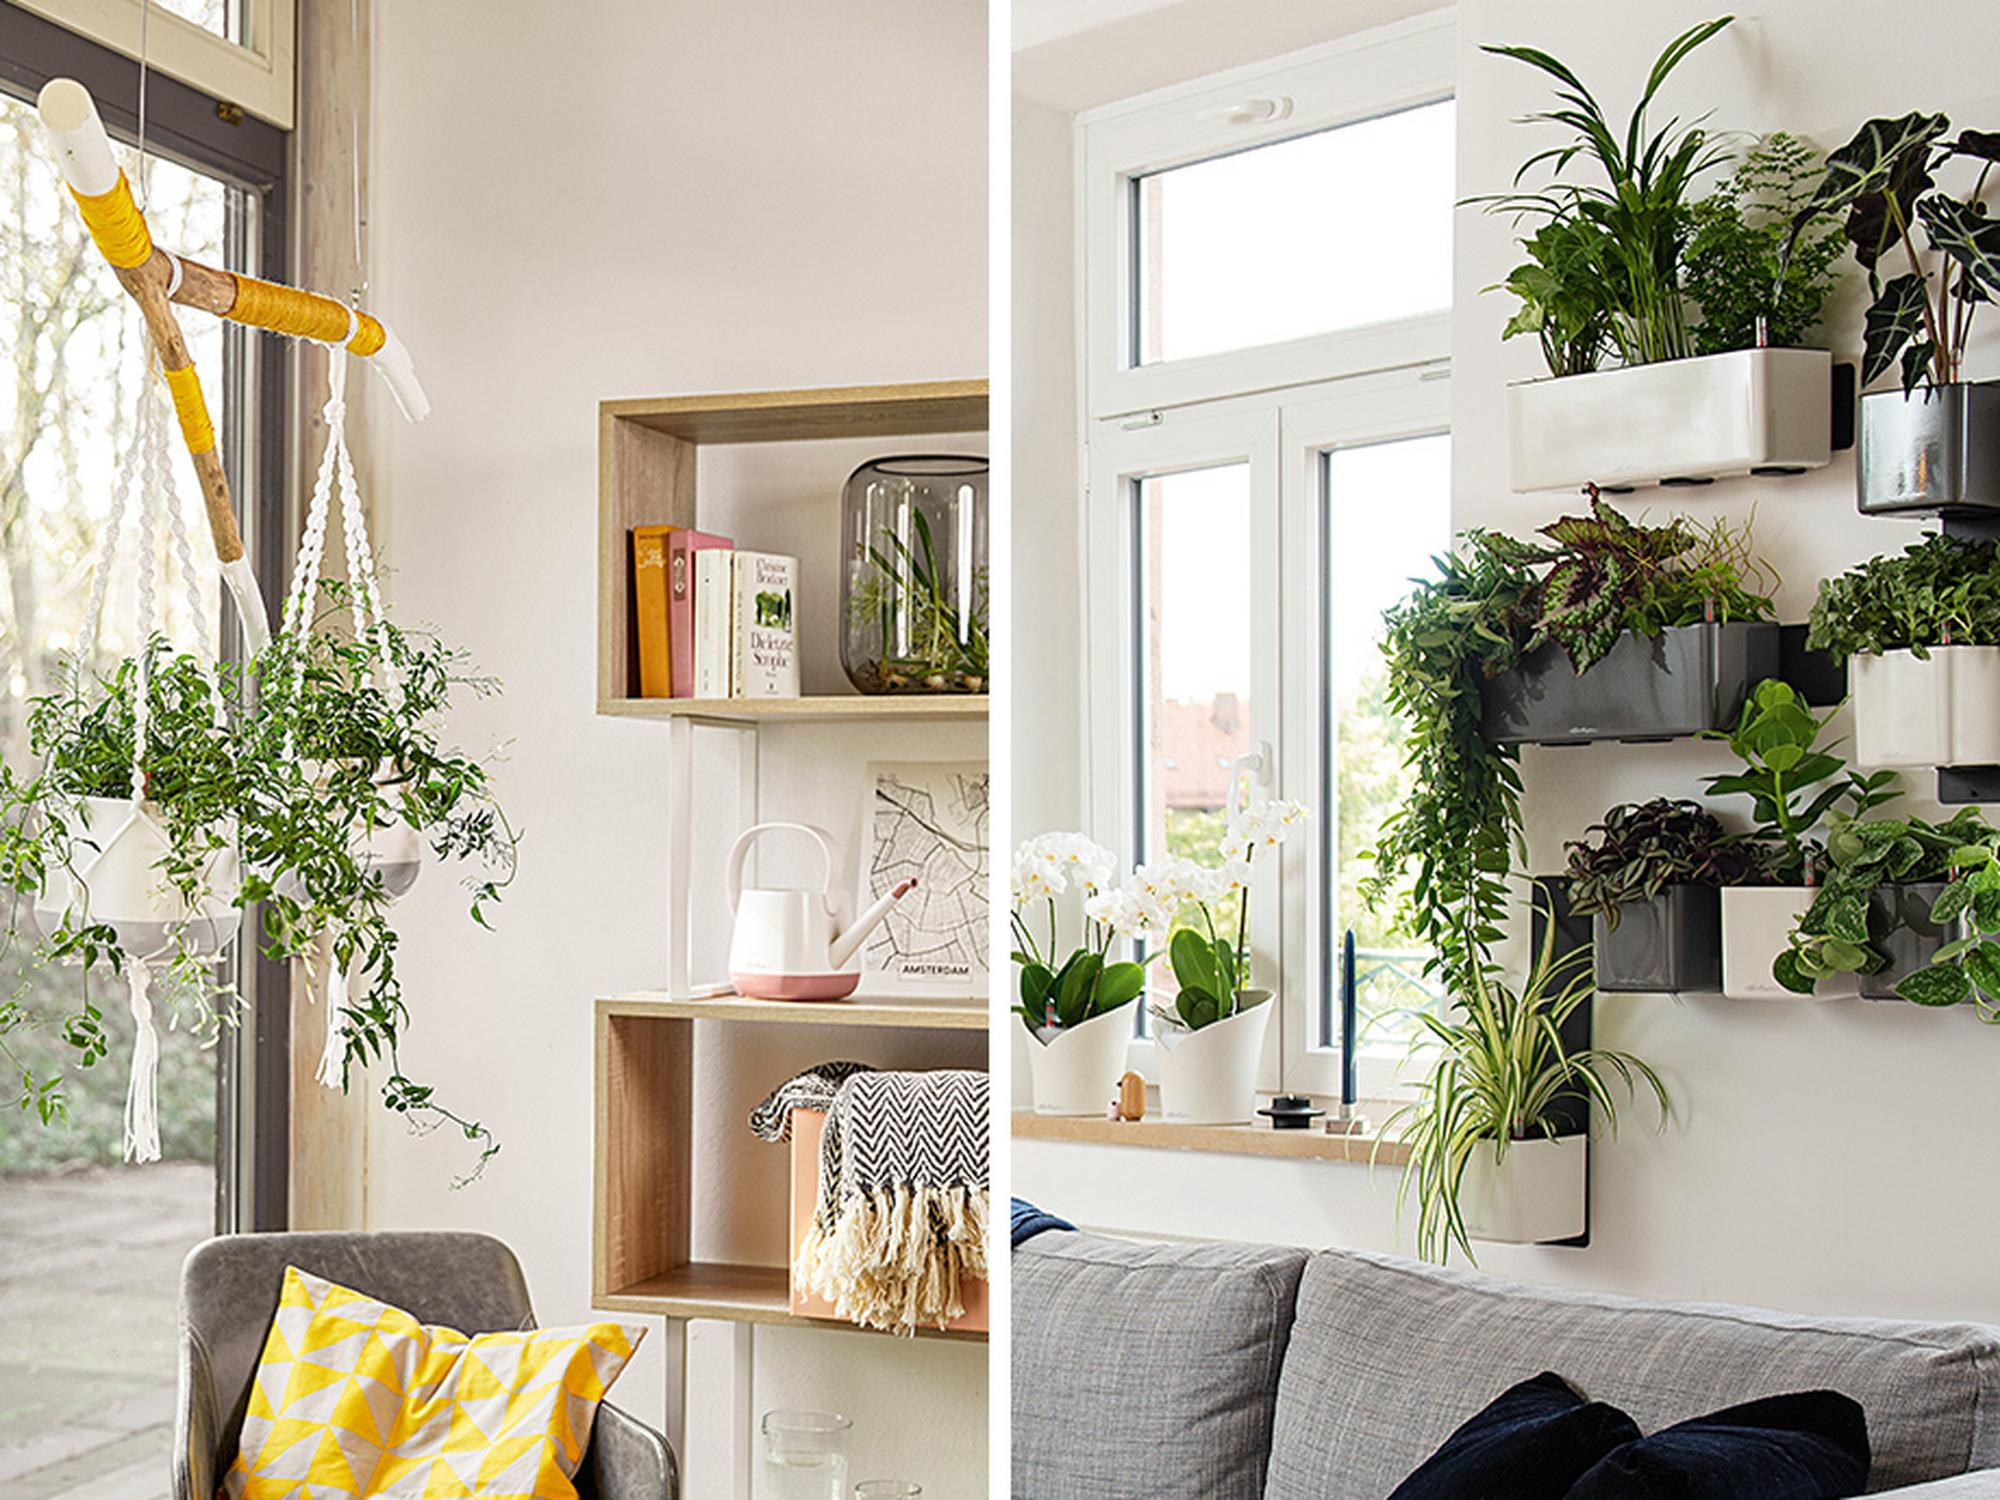 'Buy any planter and get a 7% discount on accessories + Free delivery*